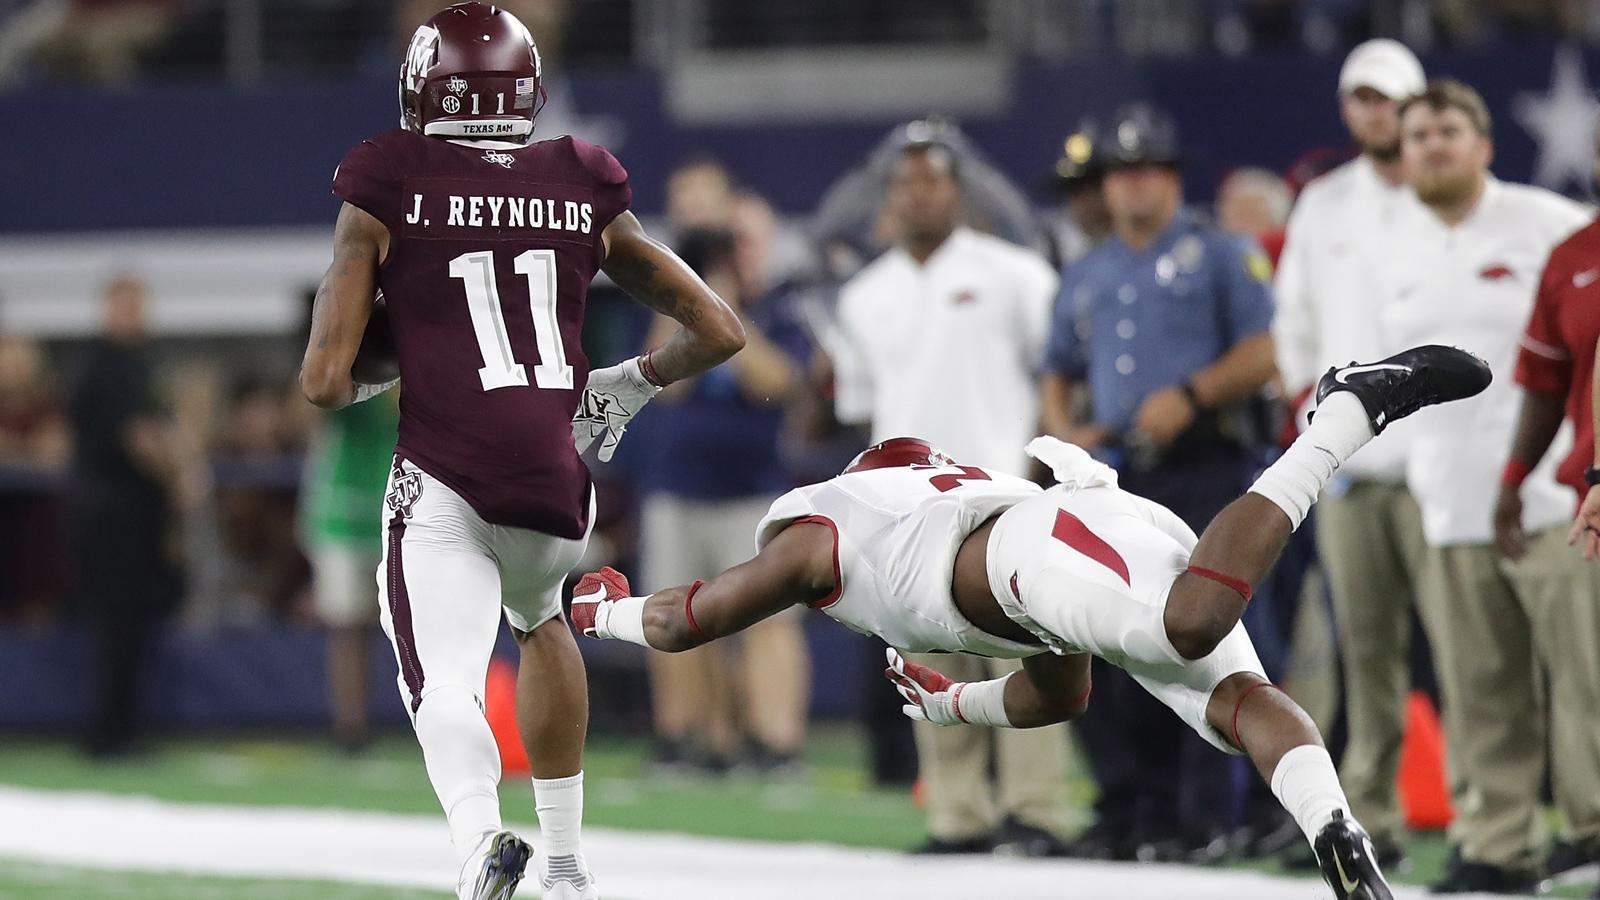 Aggies's 92-yard TD is the big blow in win over Razorbacks